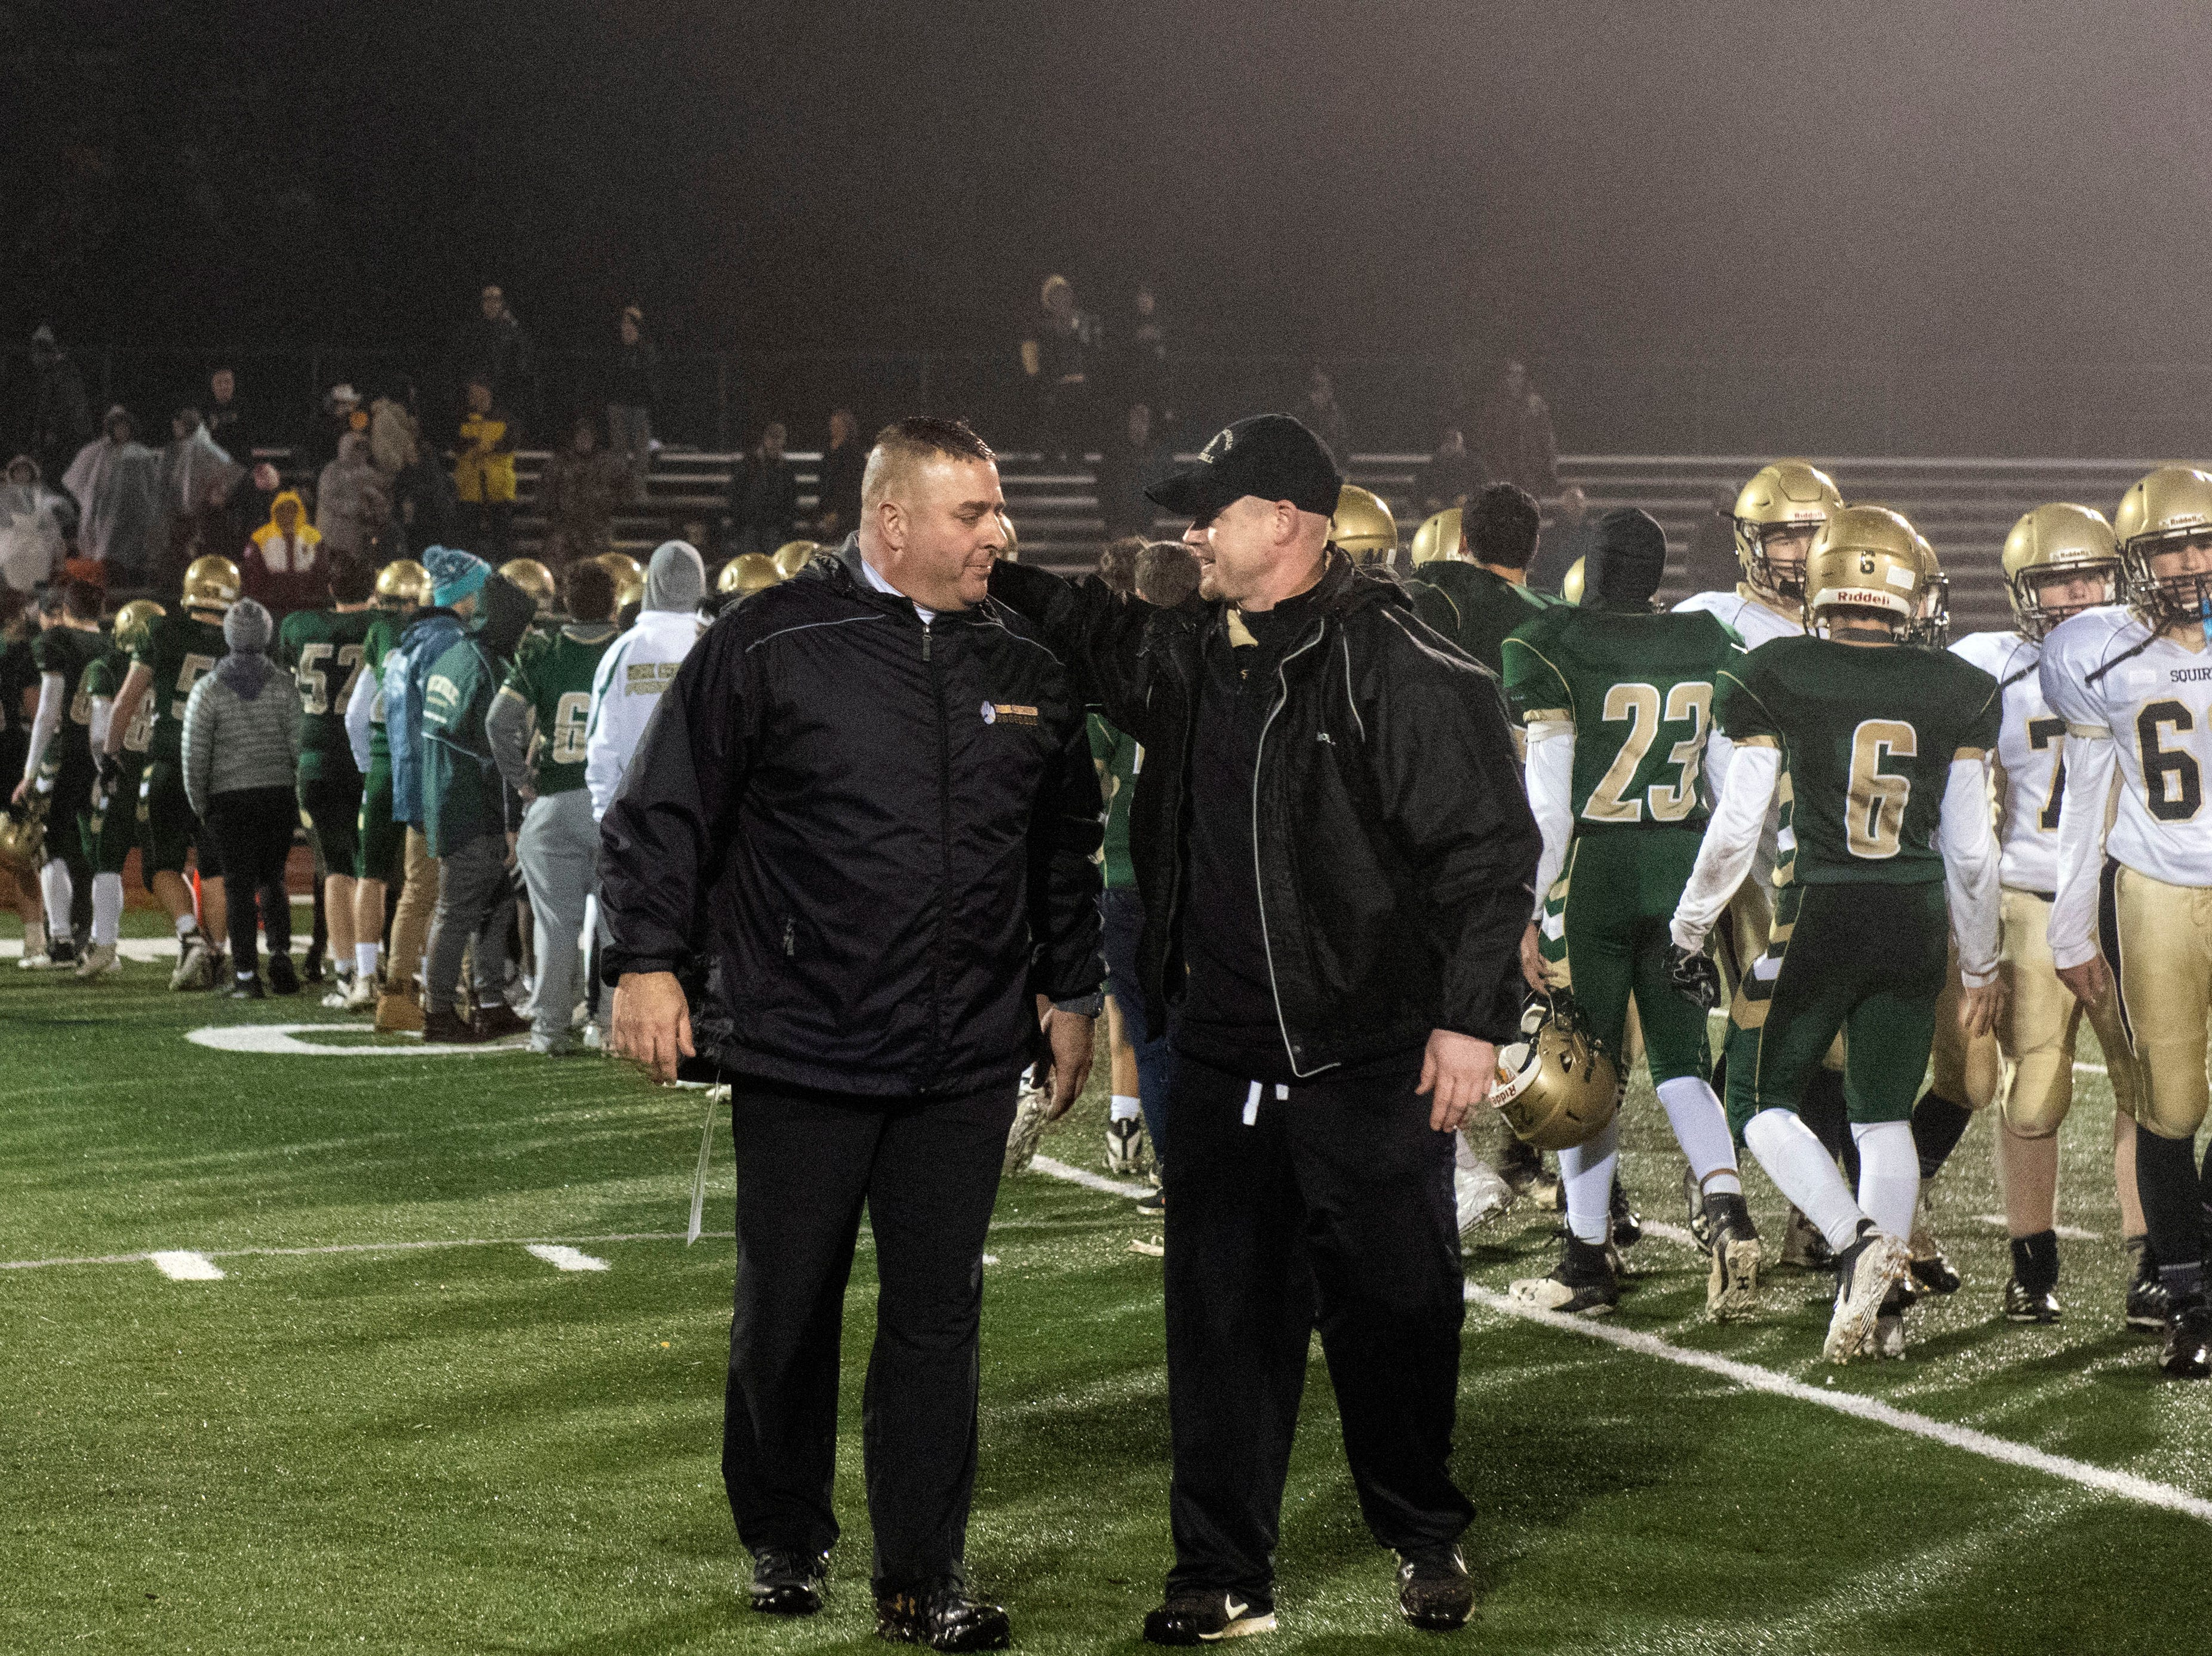 Delone Catholic head coach Corey Zortman, right, congratulates York Catholic head coach Eric Depew after the Fighting Irish won the District III 2A championship at South Western High School on Nov. 9, 2018. The York Catholic Fighting Irish beat the Delone Catholic Squires in overtime, 28-21.